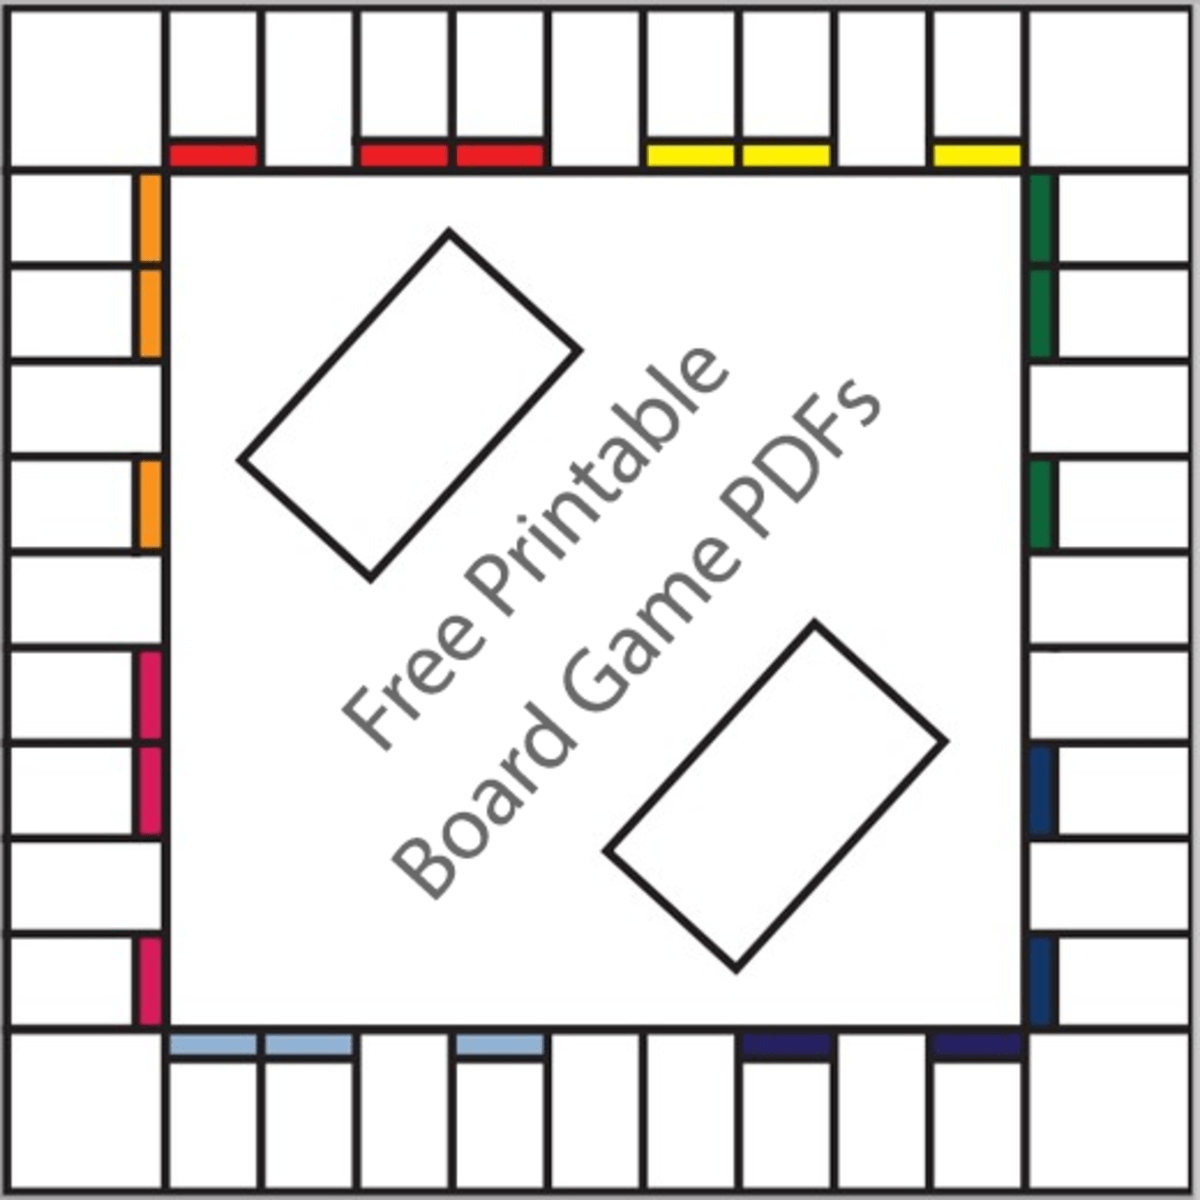 Zelf Poster Maken Online 16 Free Printable Board Game Templates | Hubpages